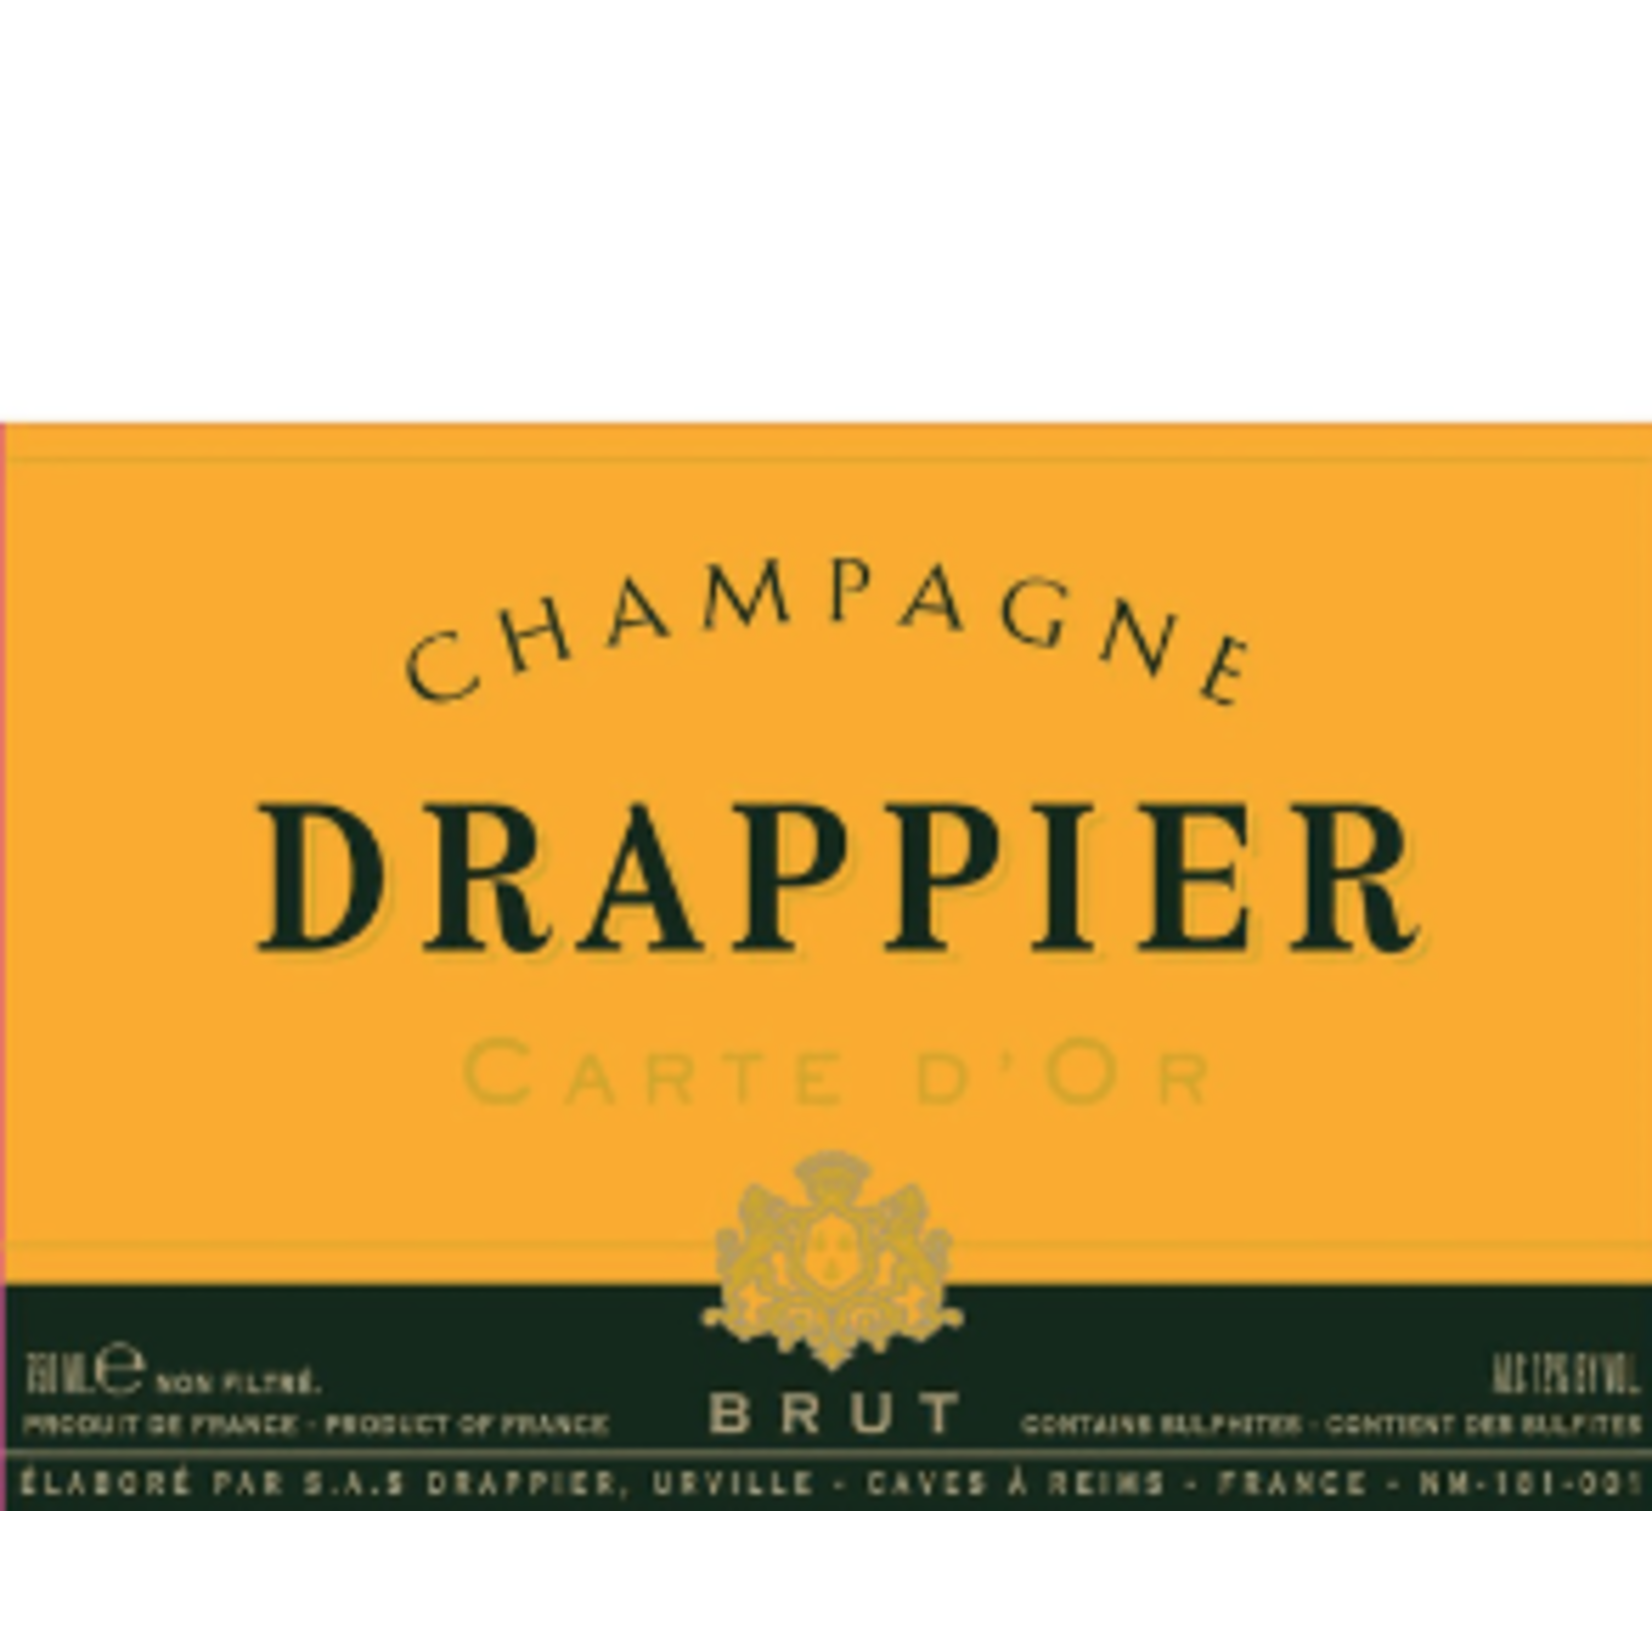 Drappier Drappier Carte D' Or Brut Champagne  375ml Champagne, France 90pts-WS